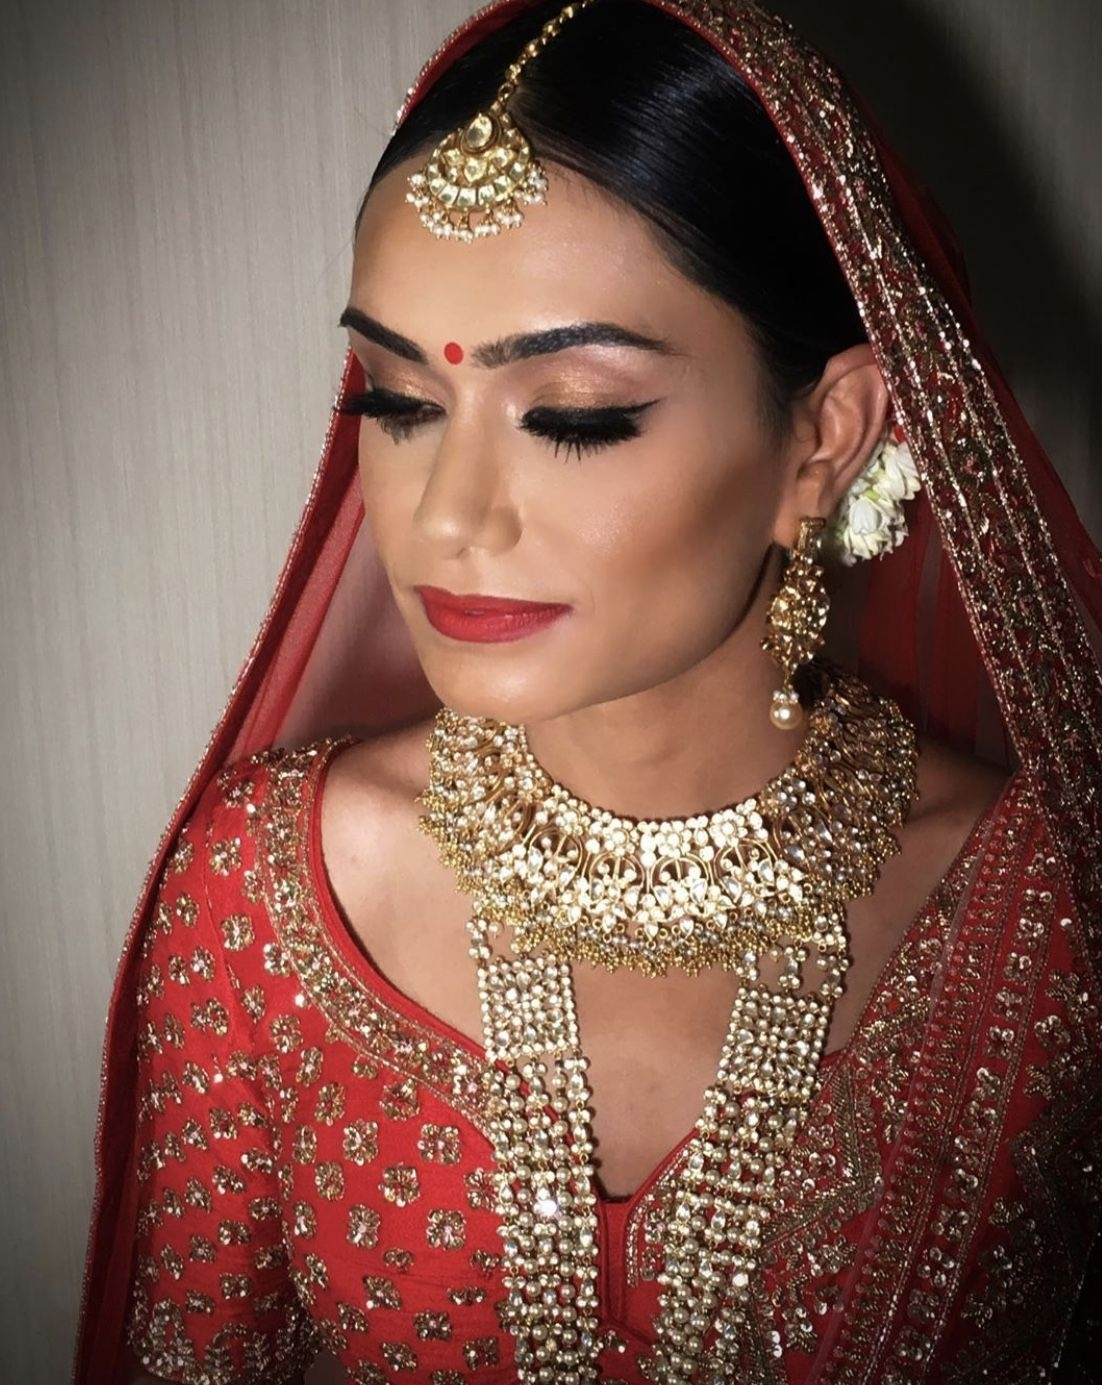 Wear Red To Wed: Roshni - Professional Hair & Make Up regarding Indian Bridal Hair And Makeup Artist